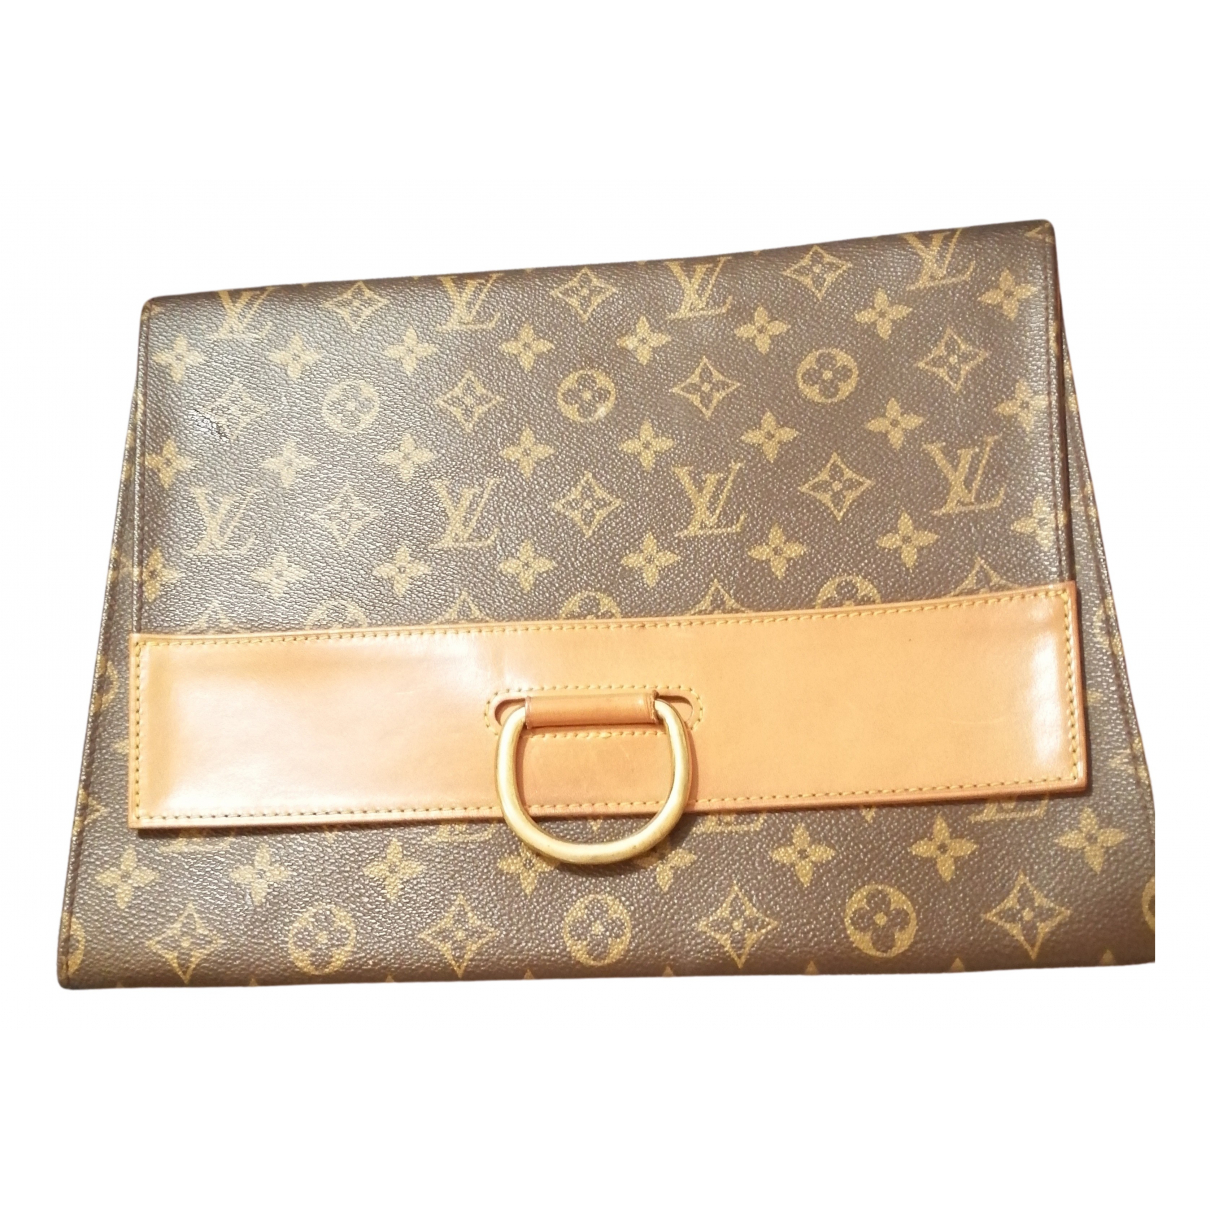 Louis Vuitton \N Clutch in  Braun Leinen